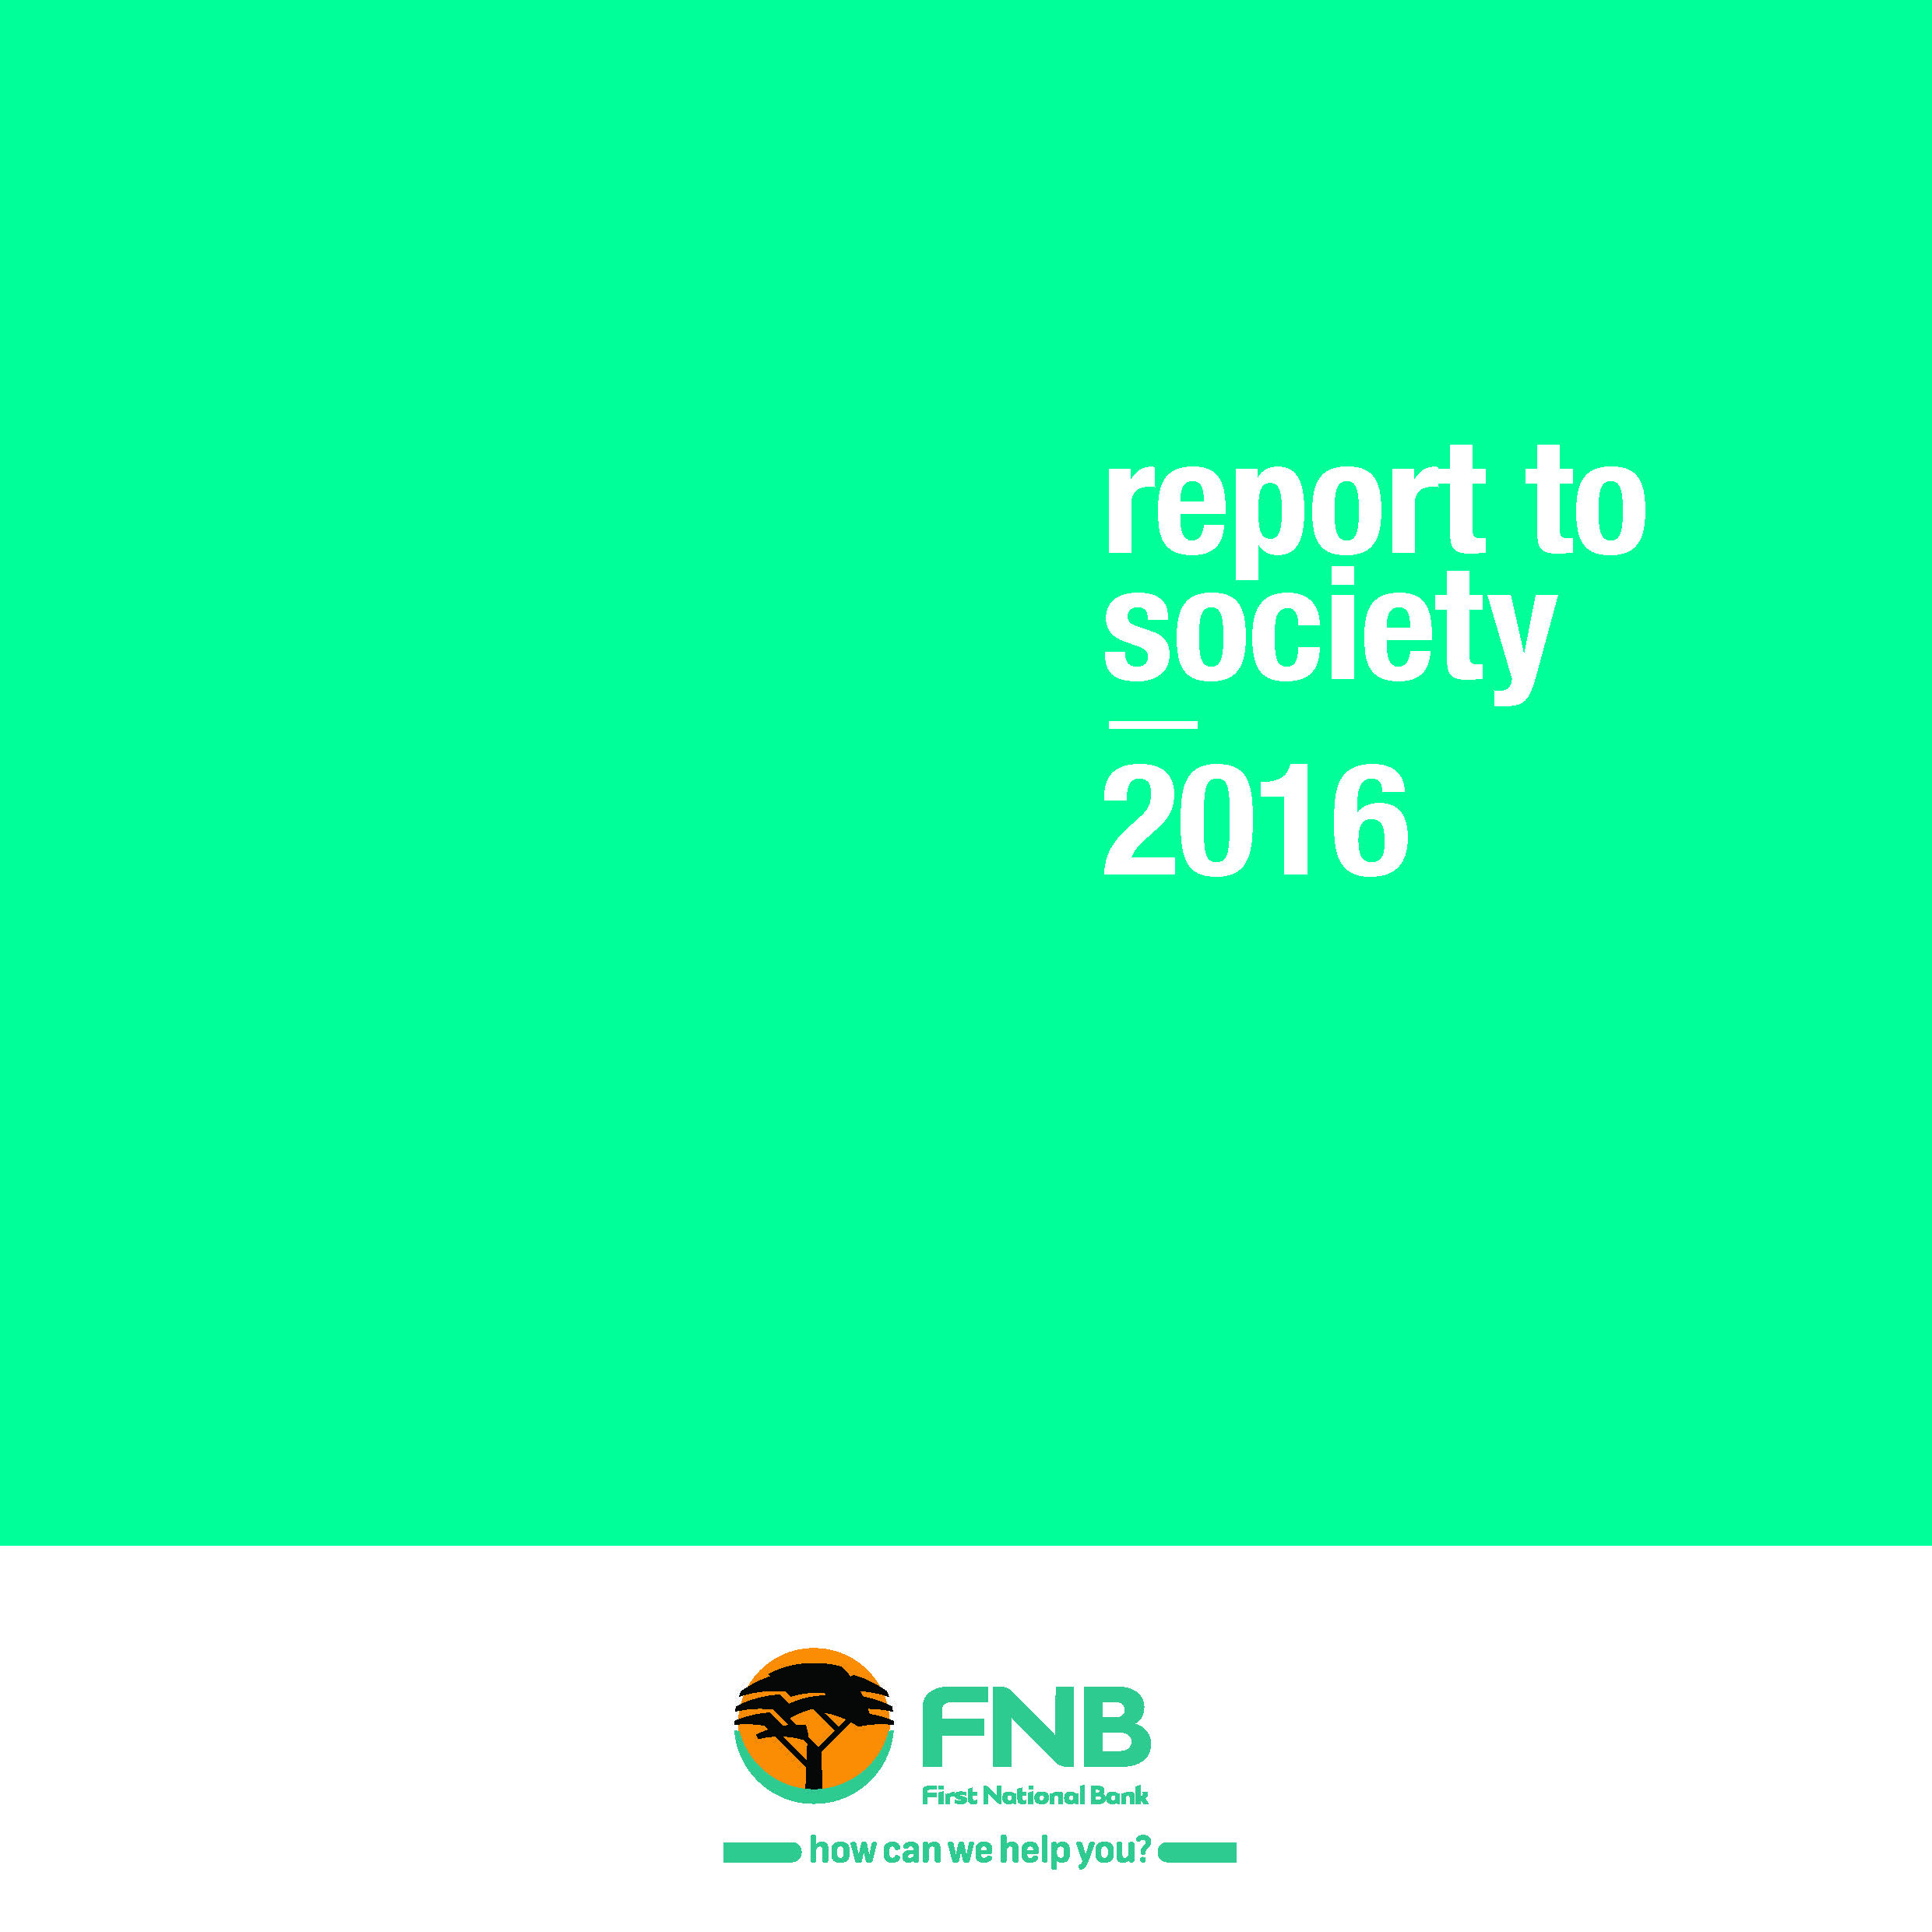 2016 FNB report to society_Page_01